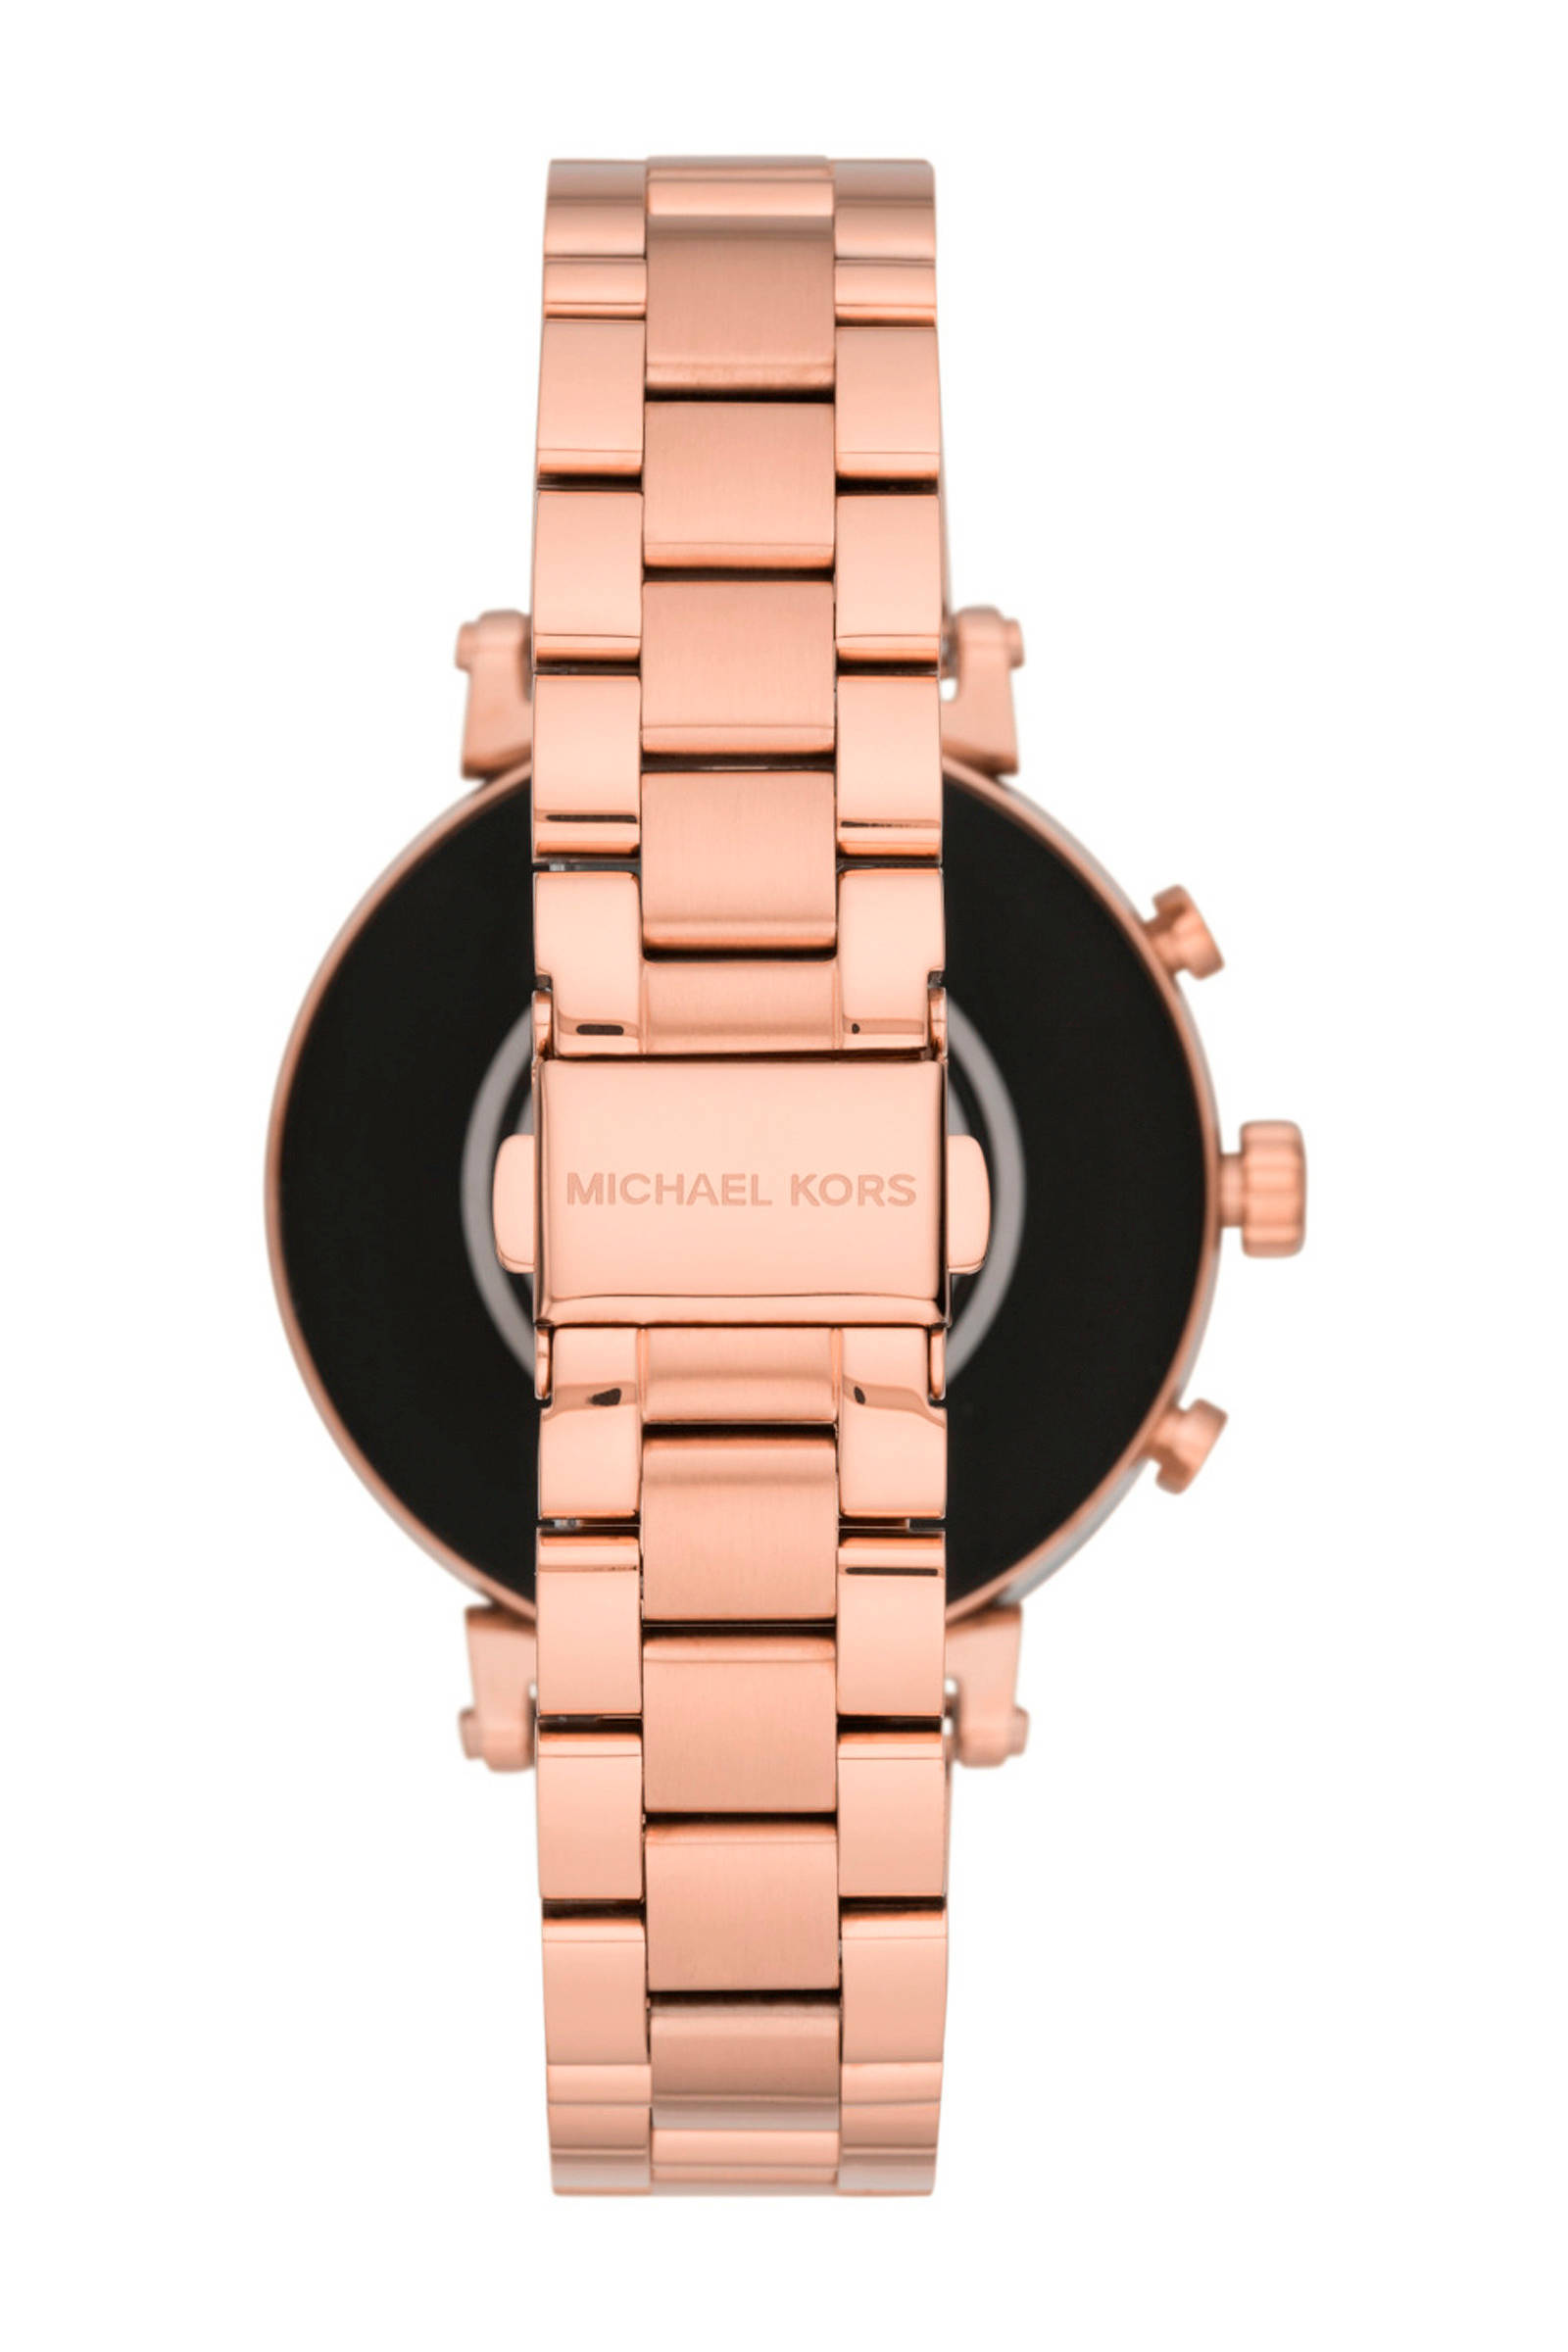 Michael Kors Sofie Gen 4 Display Smartwatch MKT5063 rosé